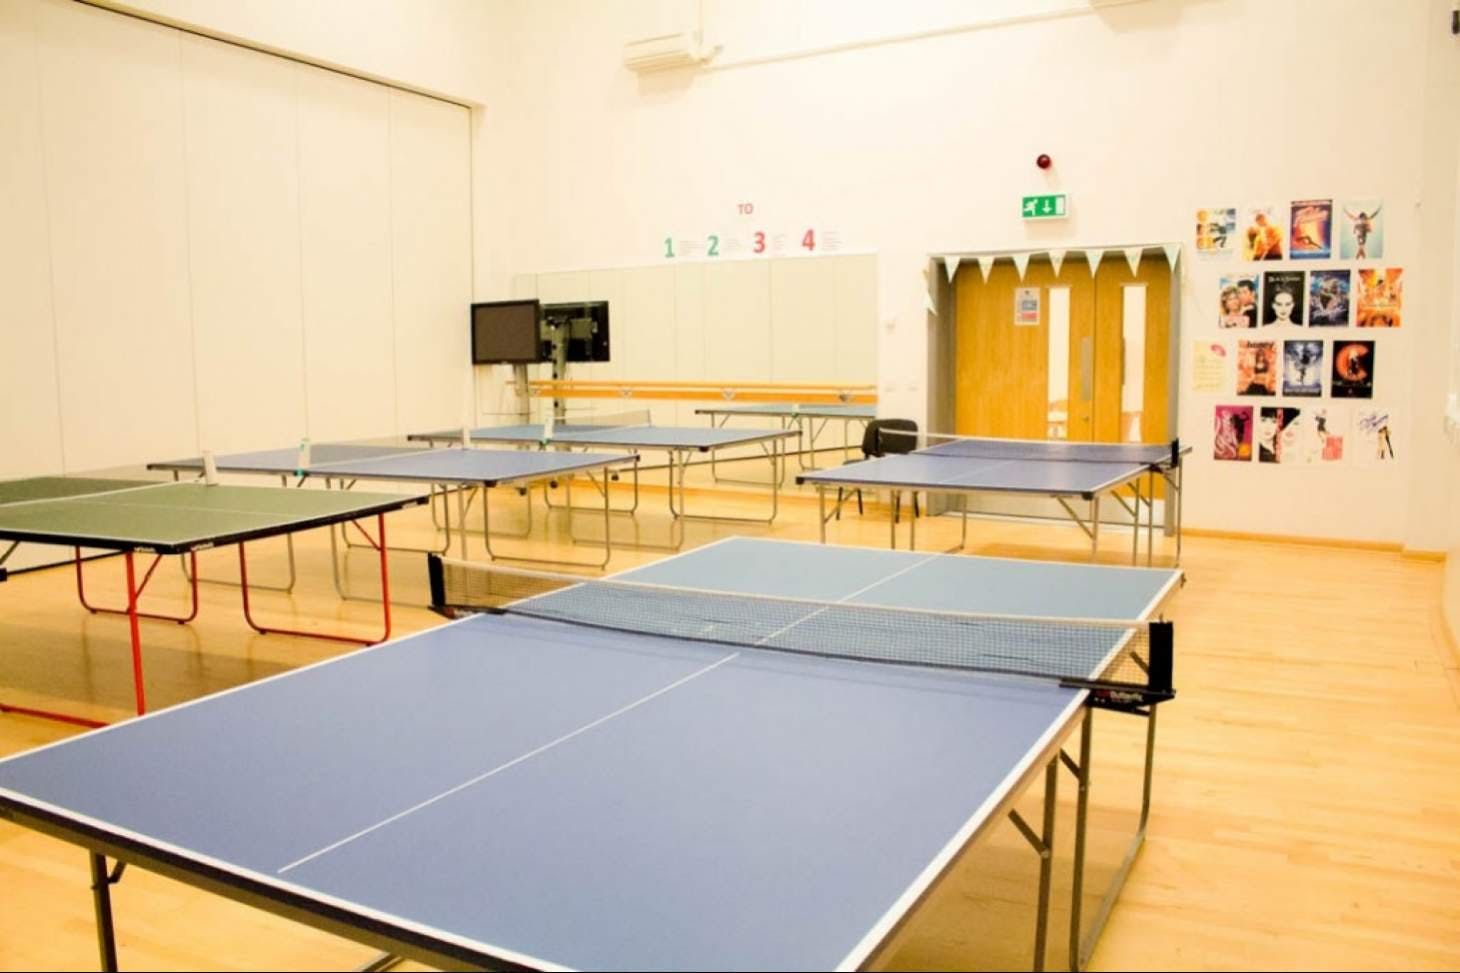 Co-op Academy Stoke-on-Trent Table | Indoor table tennis table